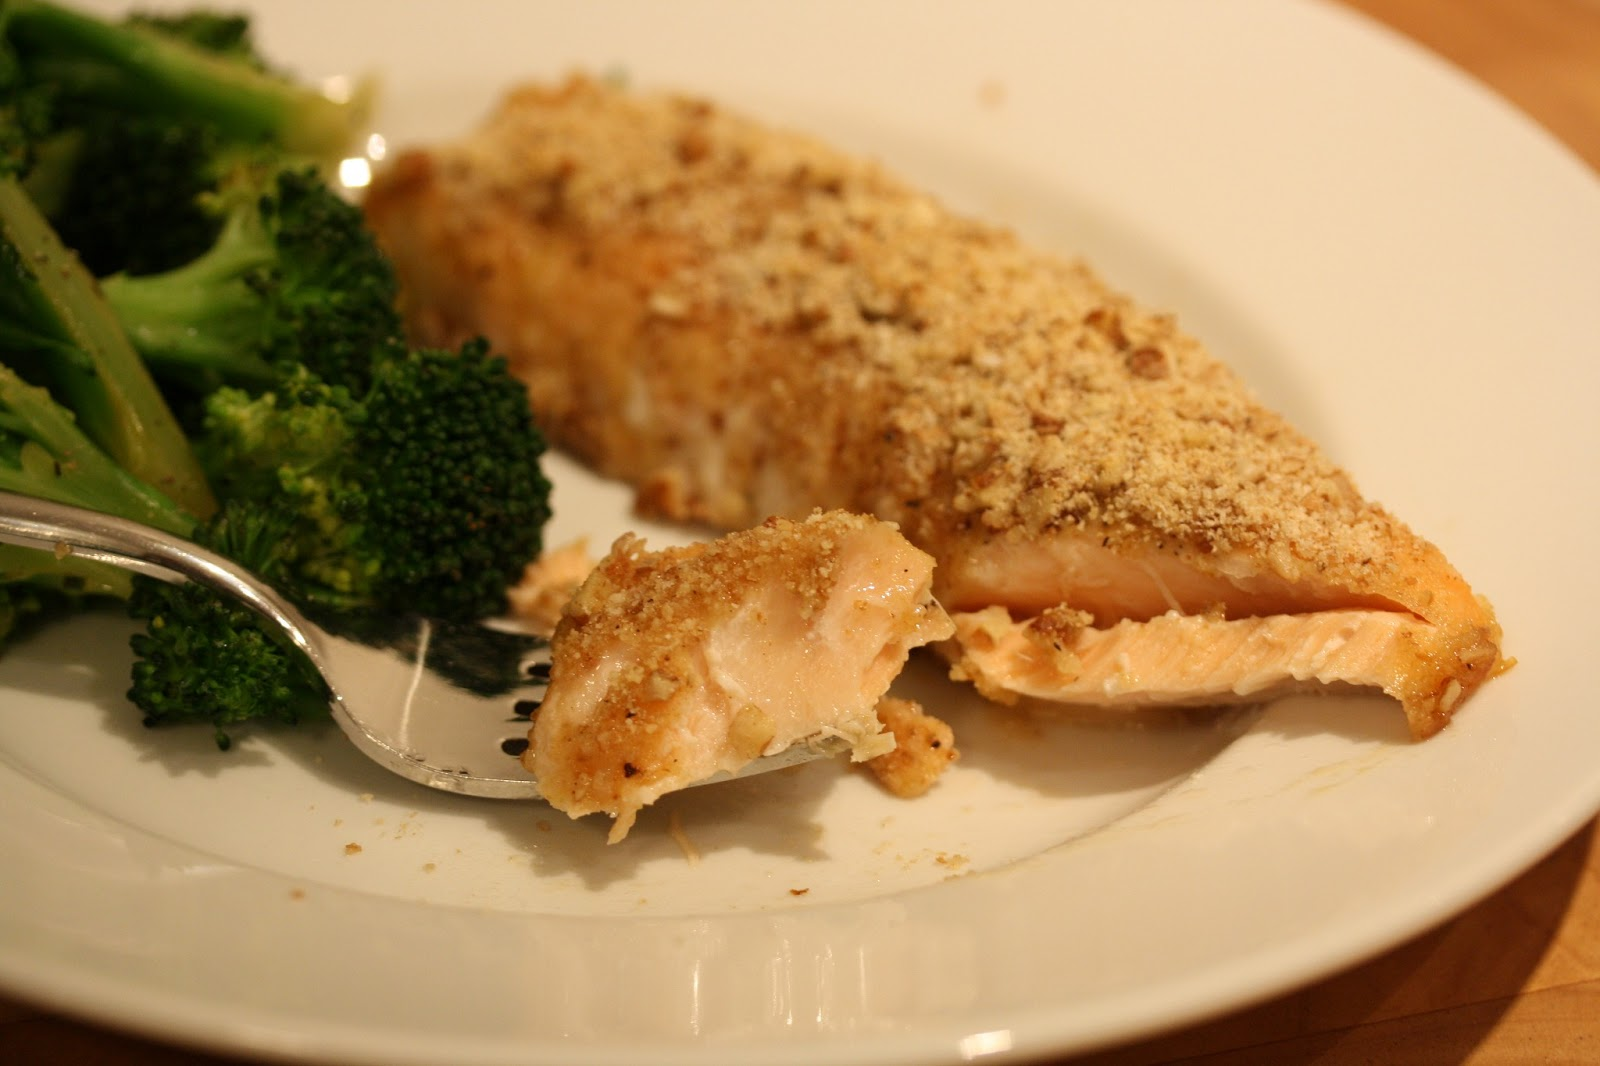 Hot Dinner Happy Home: Baked Honey Dijon Salmon